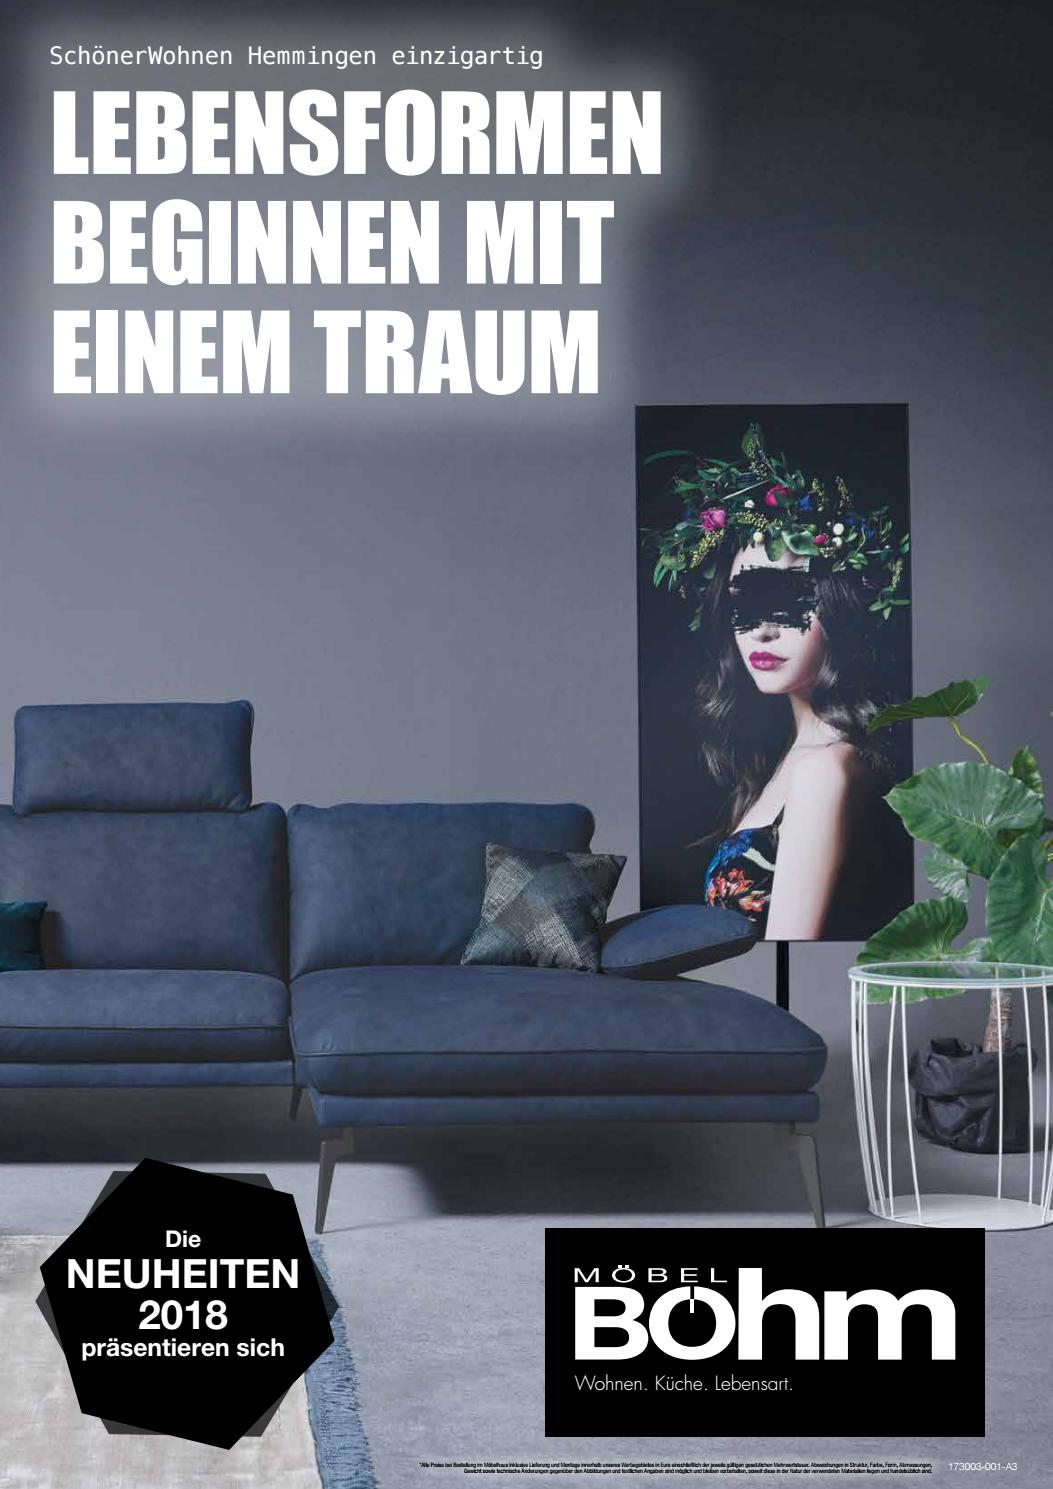 m bel b hm neuheiten 2018 by perspektive werbeagentur issuu. Black Bedroom Furniture Sets. Home Design Ideas